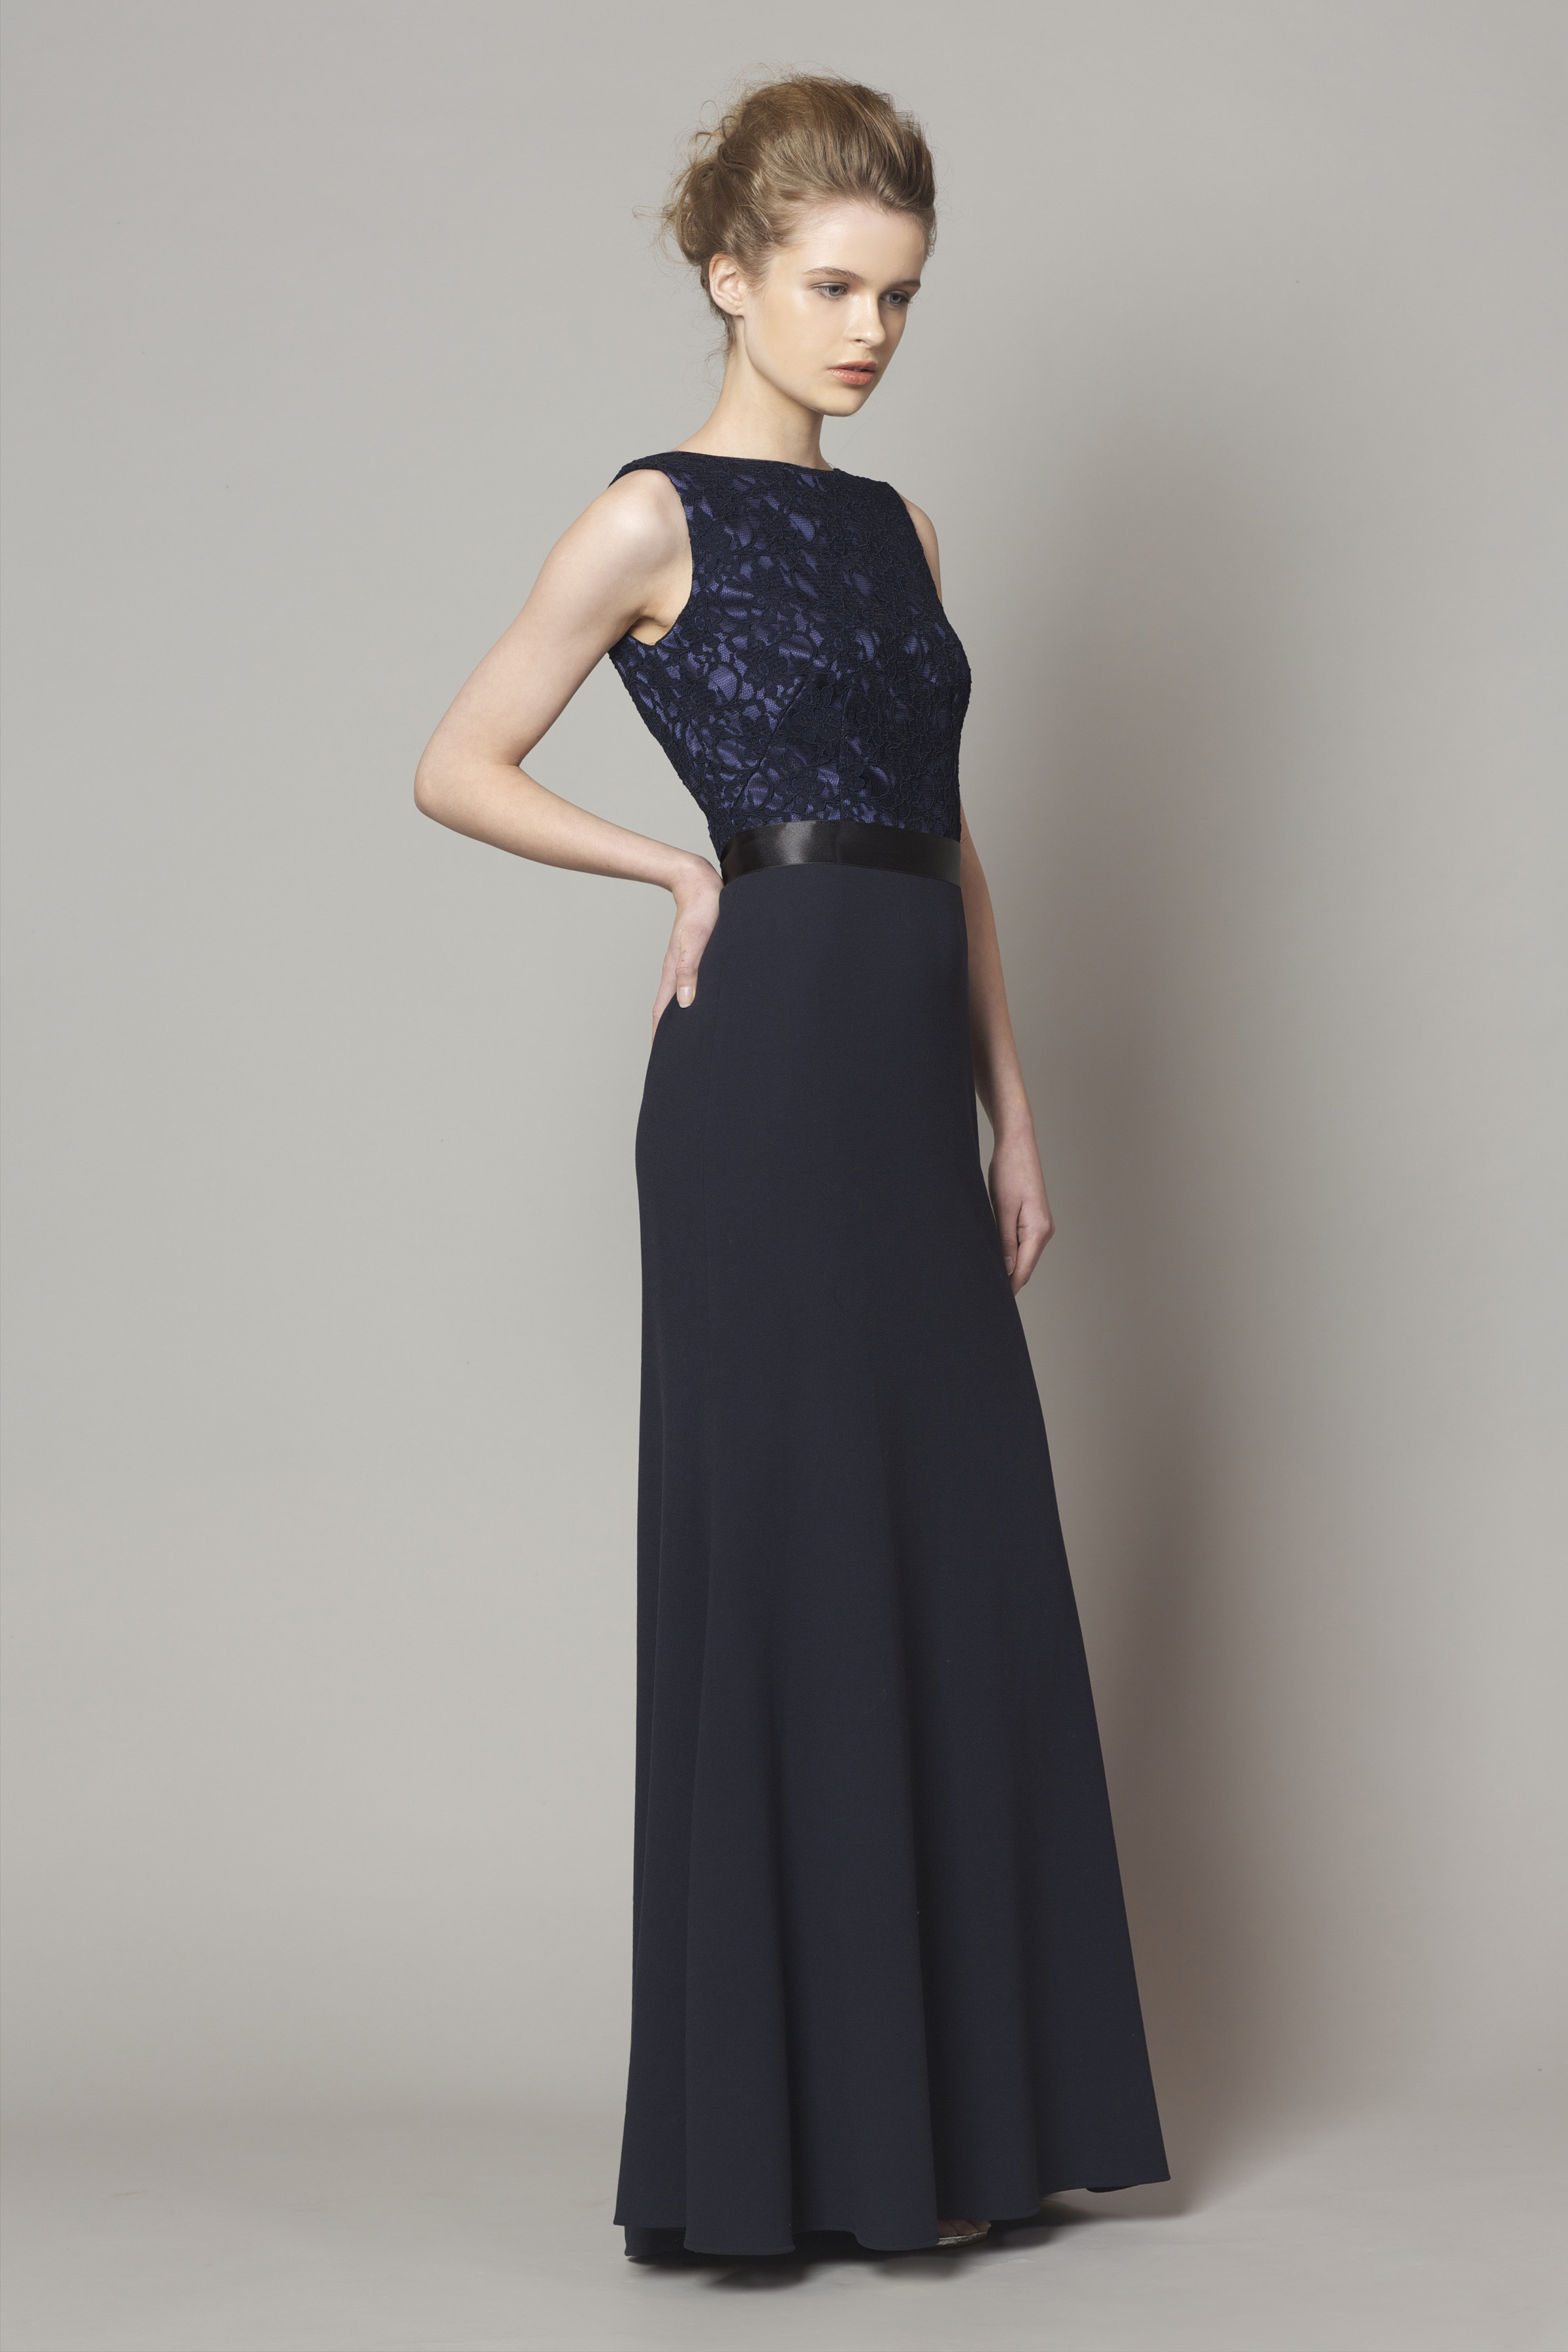 51731f4bcd52b Navy Lace top style DC1176 - Bridesmaid Evening   Debs Dresses from ...